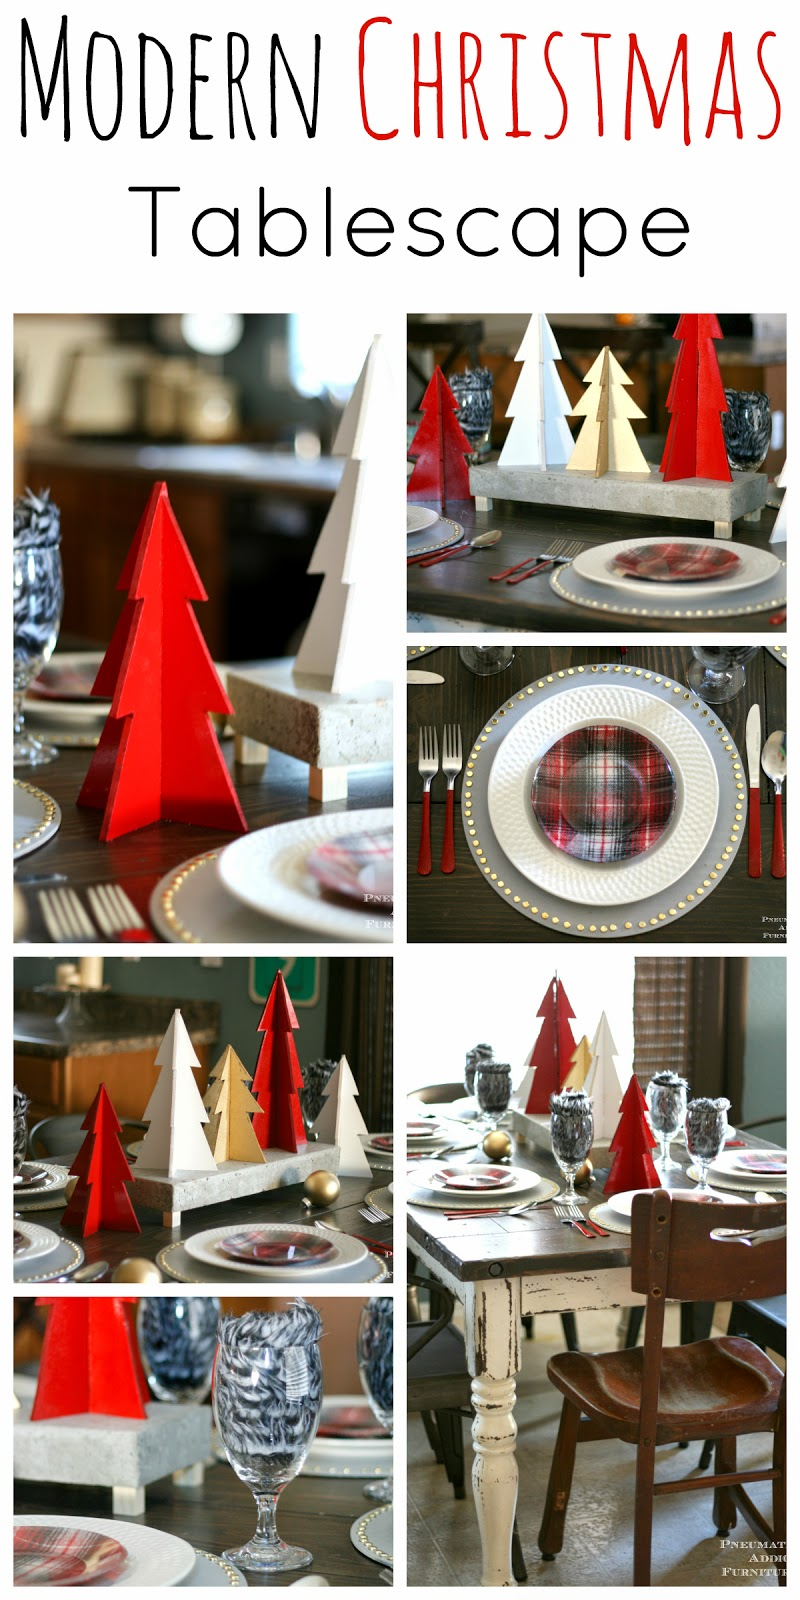 Pneumatic Addict 4th Day Of Christmas Modern Tablescape